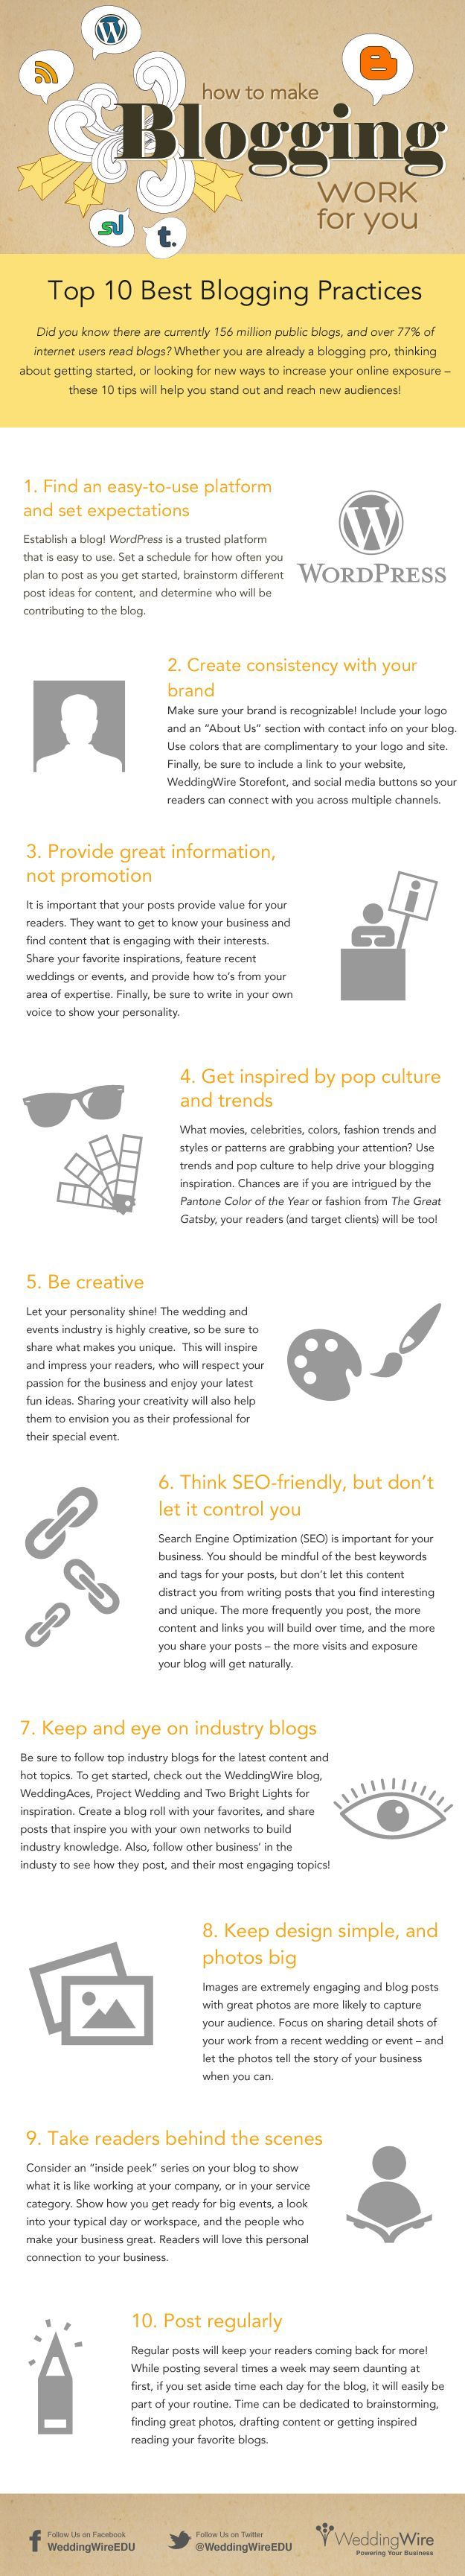 How to make blogging work for you - Ten best blogging practices. Infographic.